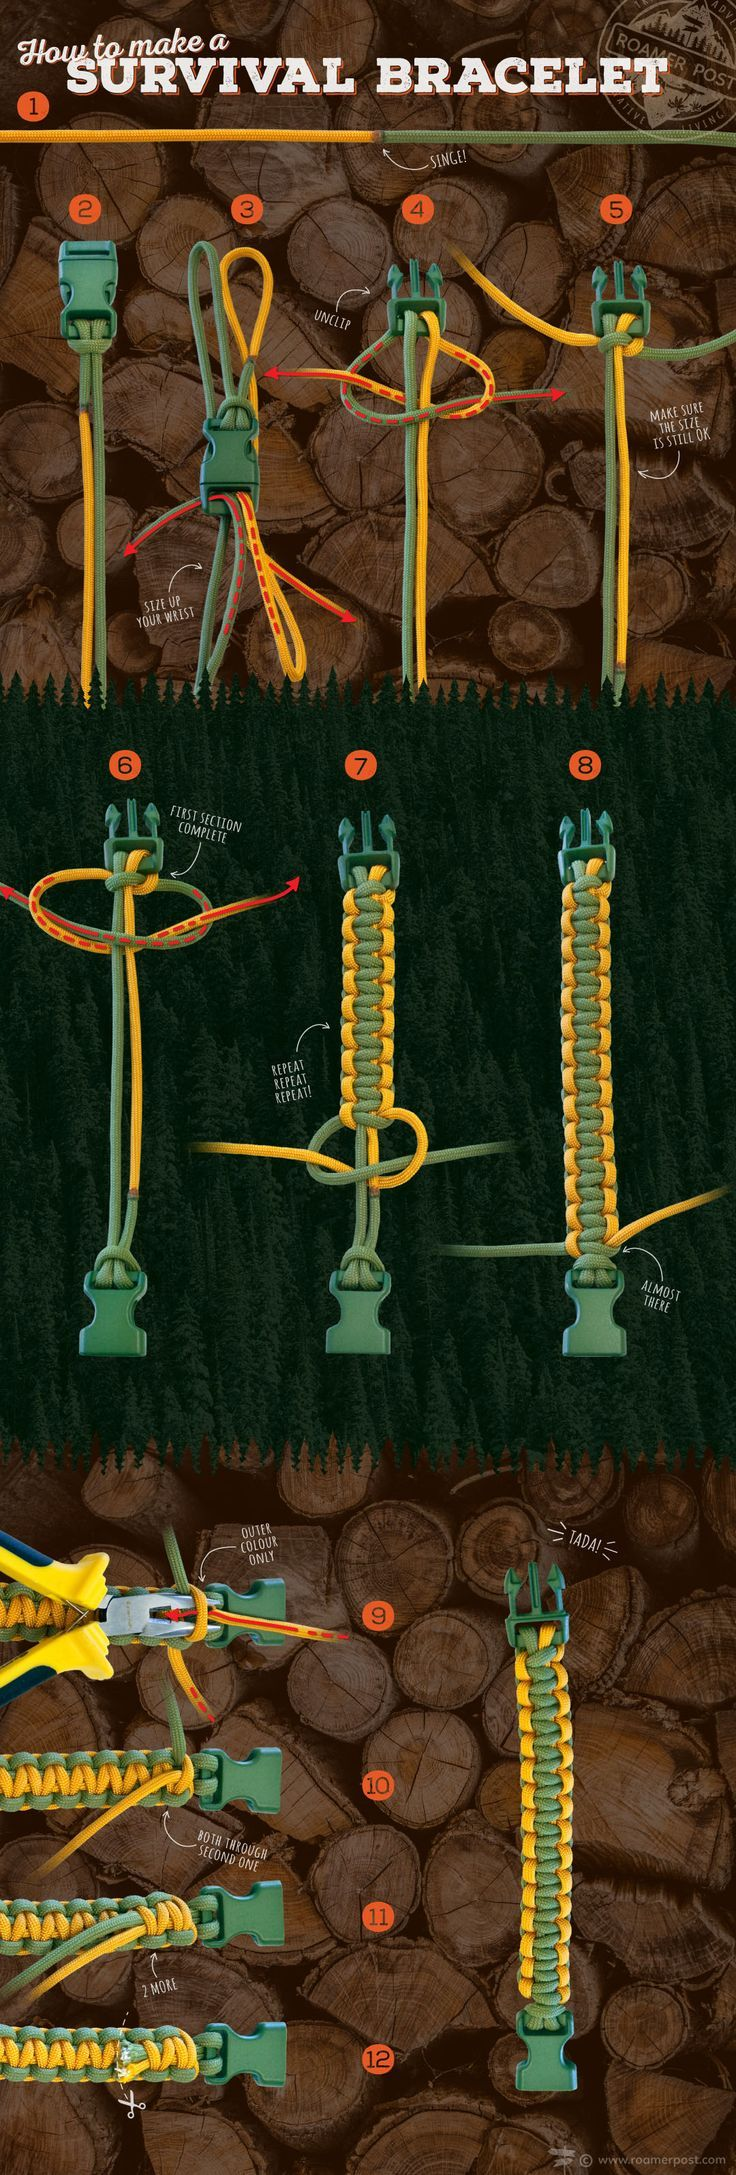 How to tie a survival bracelet - a step by step infographic tutorial to help you knot your way to one of the most useful DIY adventure accessories.